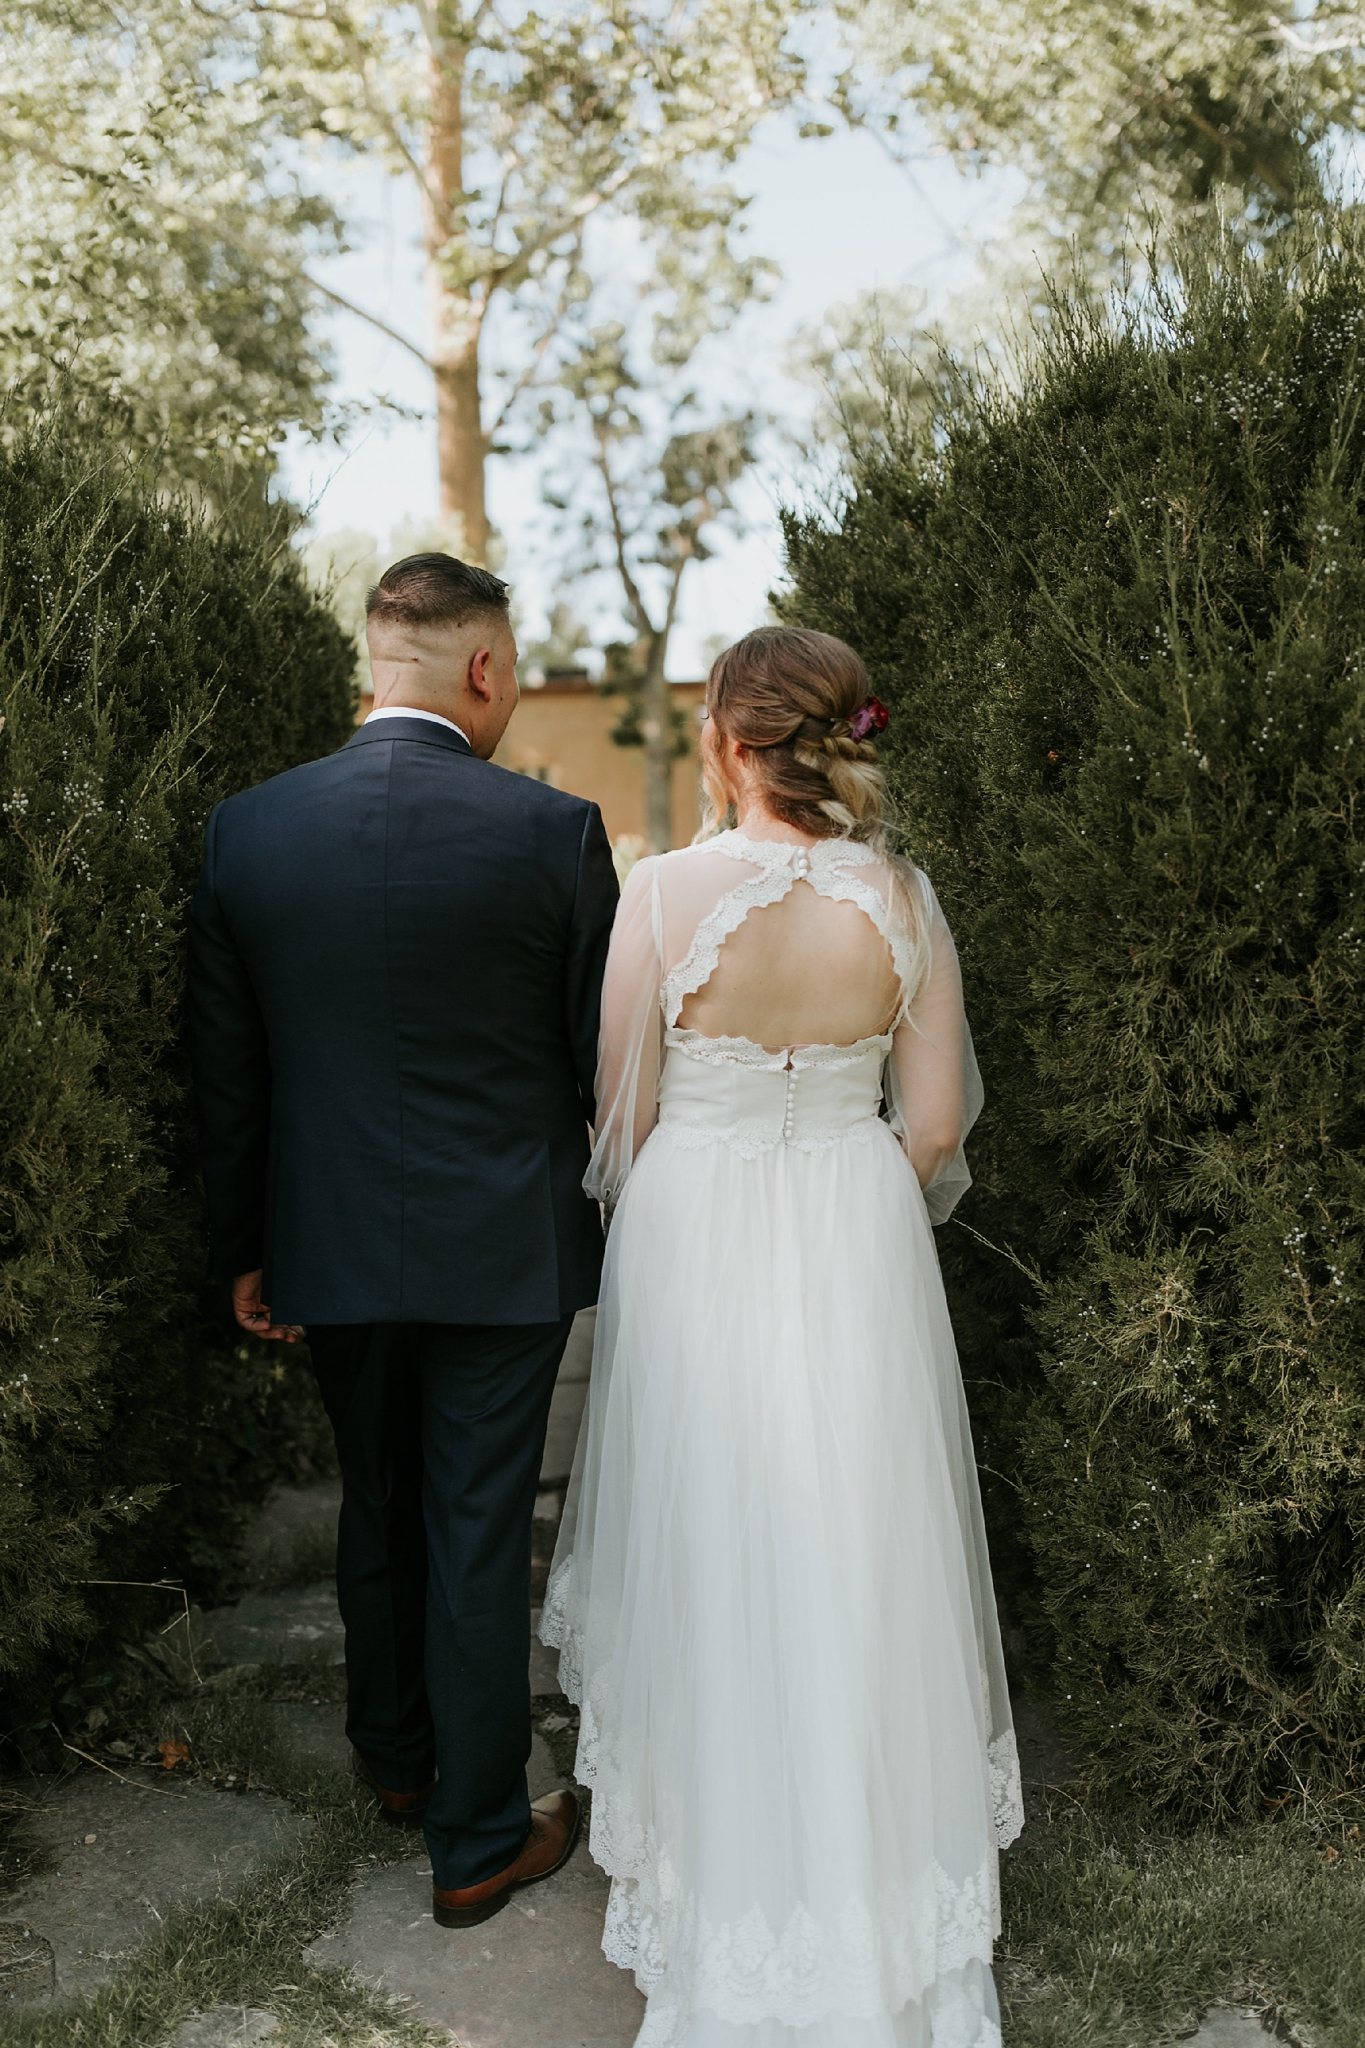 Alicia+lucia+photography+-+albuquerque+wedding+photographer+-+santa+fe+wedding+photography+-+new+mexico+wedding+photographer+-+new+mexico+wedding+-+wedding+gowns+-+bridal+gowns+-+a+line+wedding+gown_0031.jpg